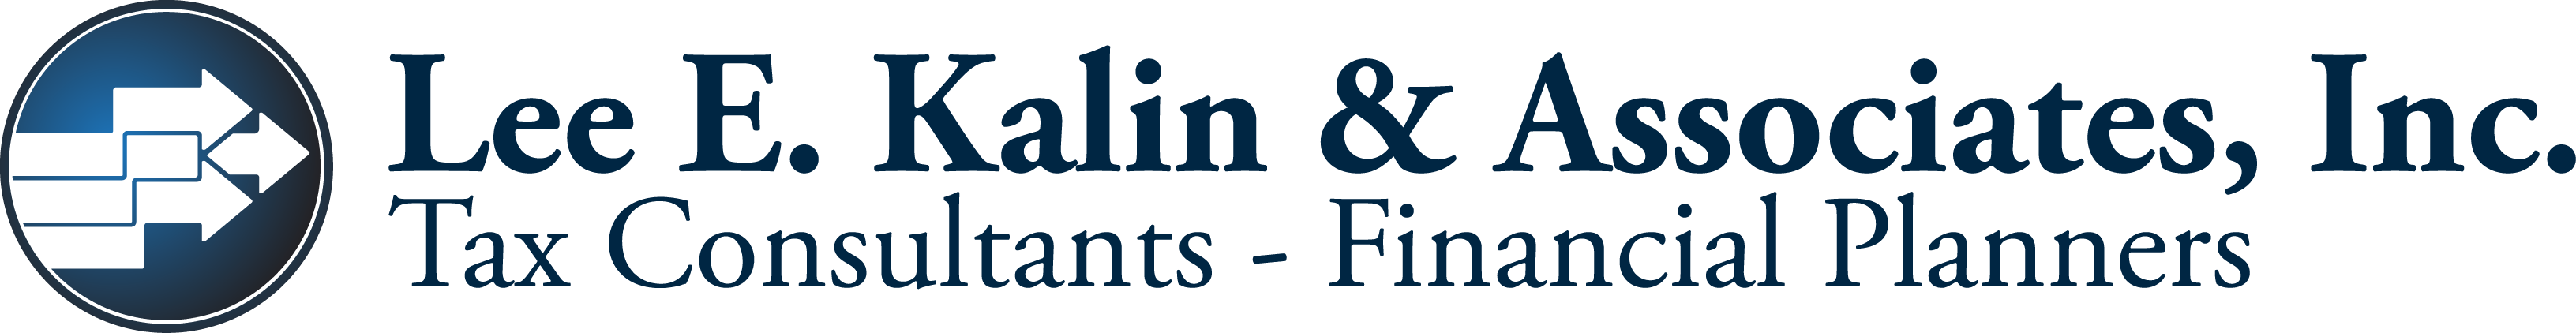 Logo for Lee E Kalin & Associates